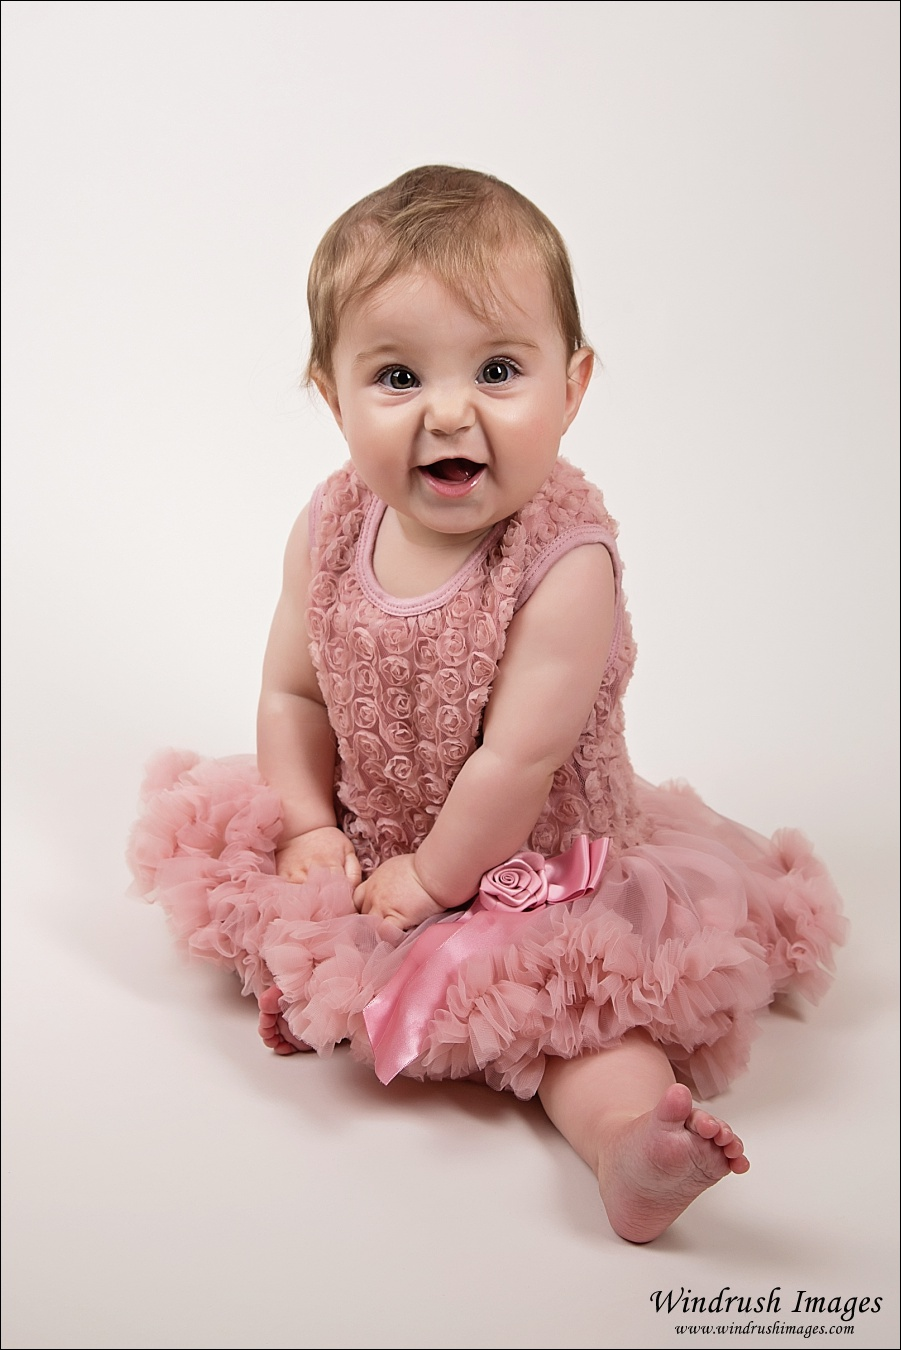 6 momth old baby girl in pink tutu dress for spring themed photos